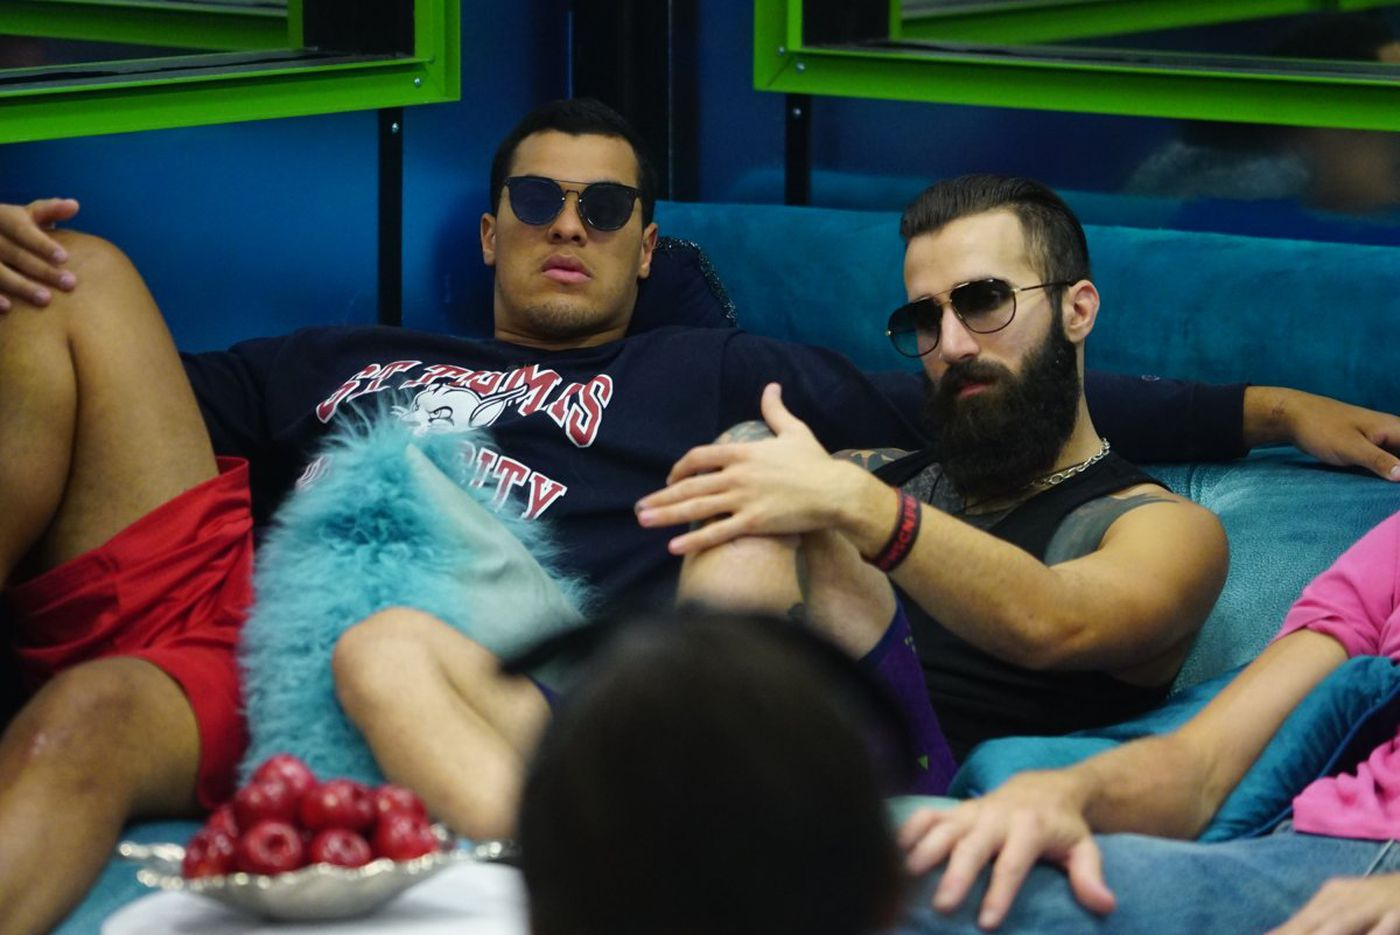 Josh Martinez and Paul Abrahamian on Big Brother 19.